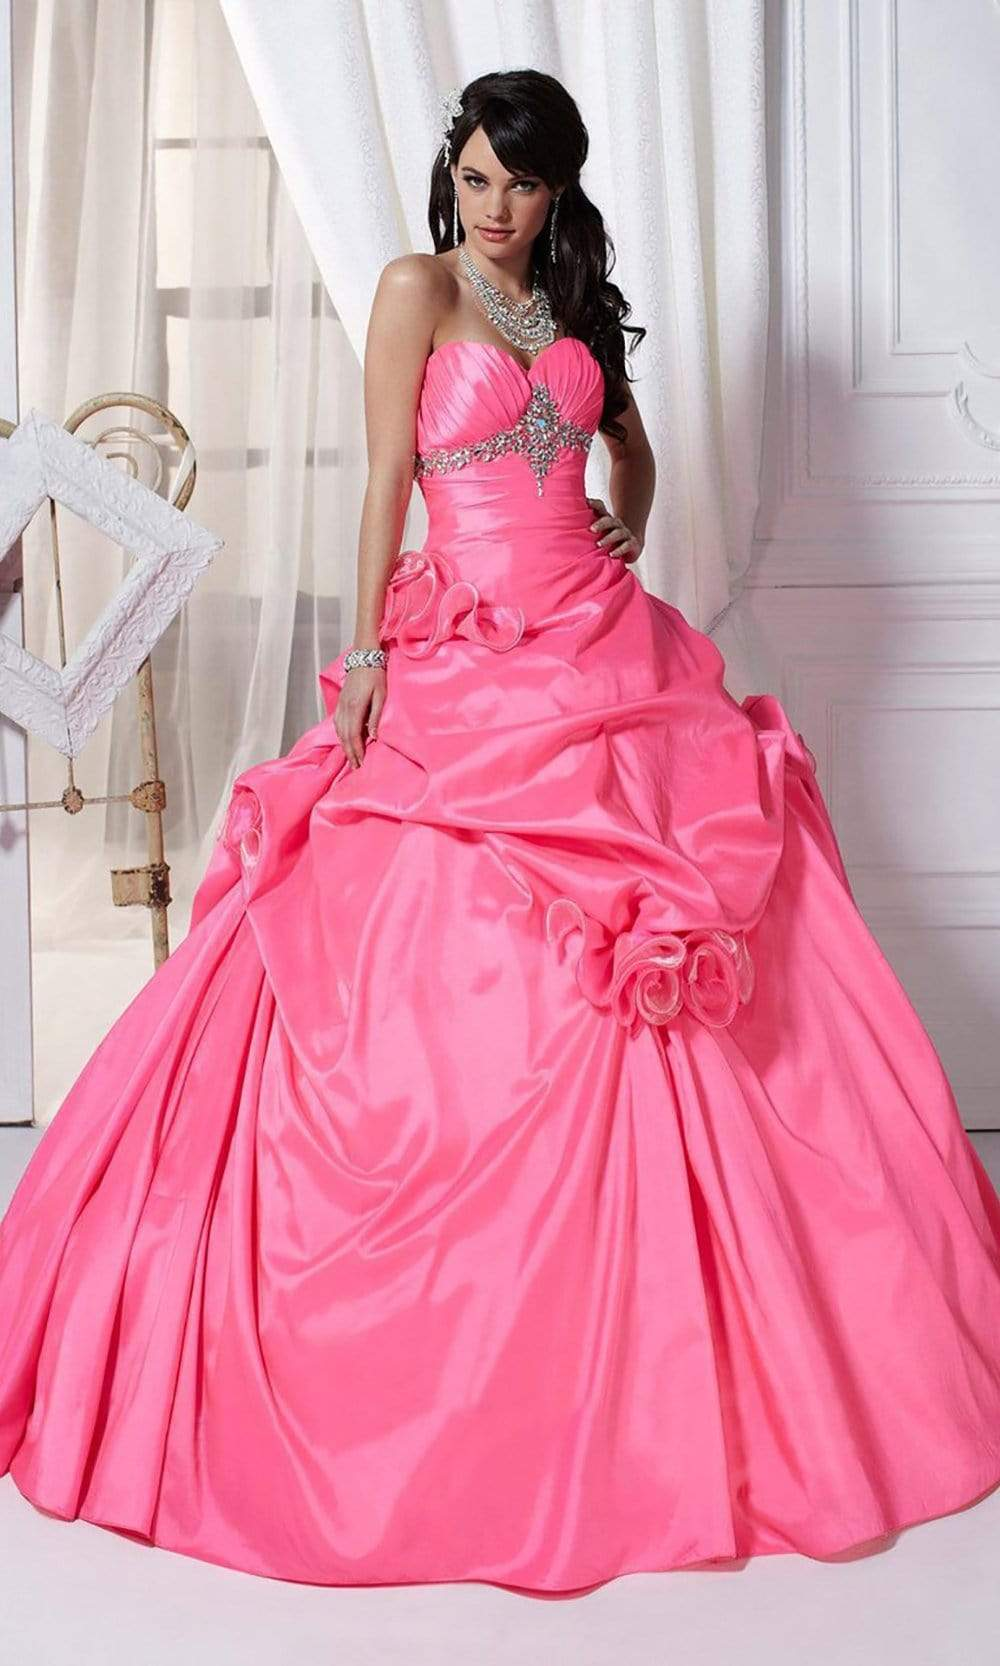 Tiffany Designs - 56216 Rosette Accented Strapless Ballgown from Tiffany Designs